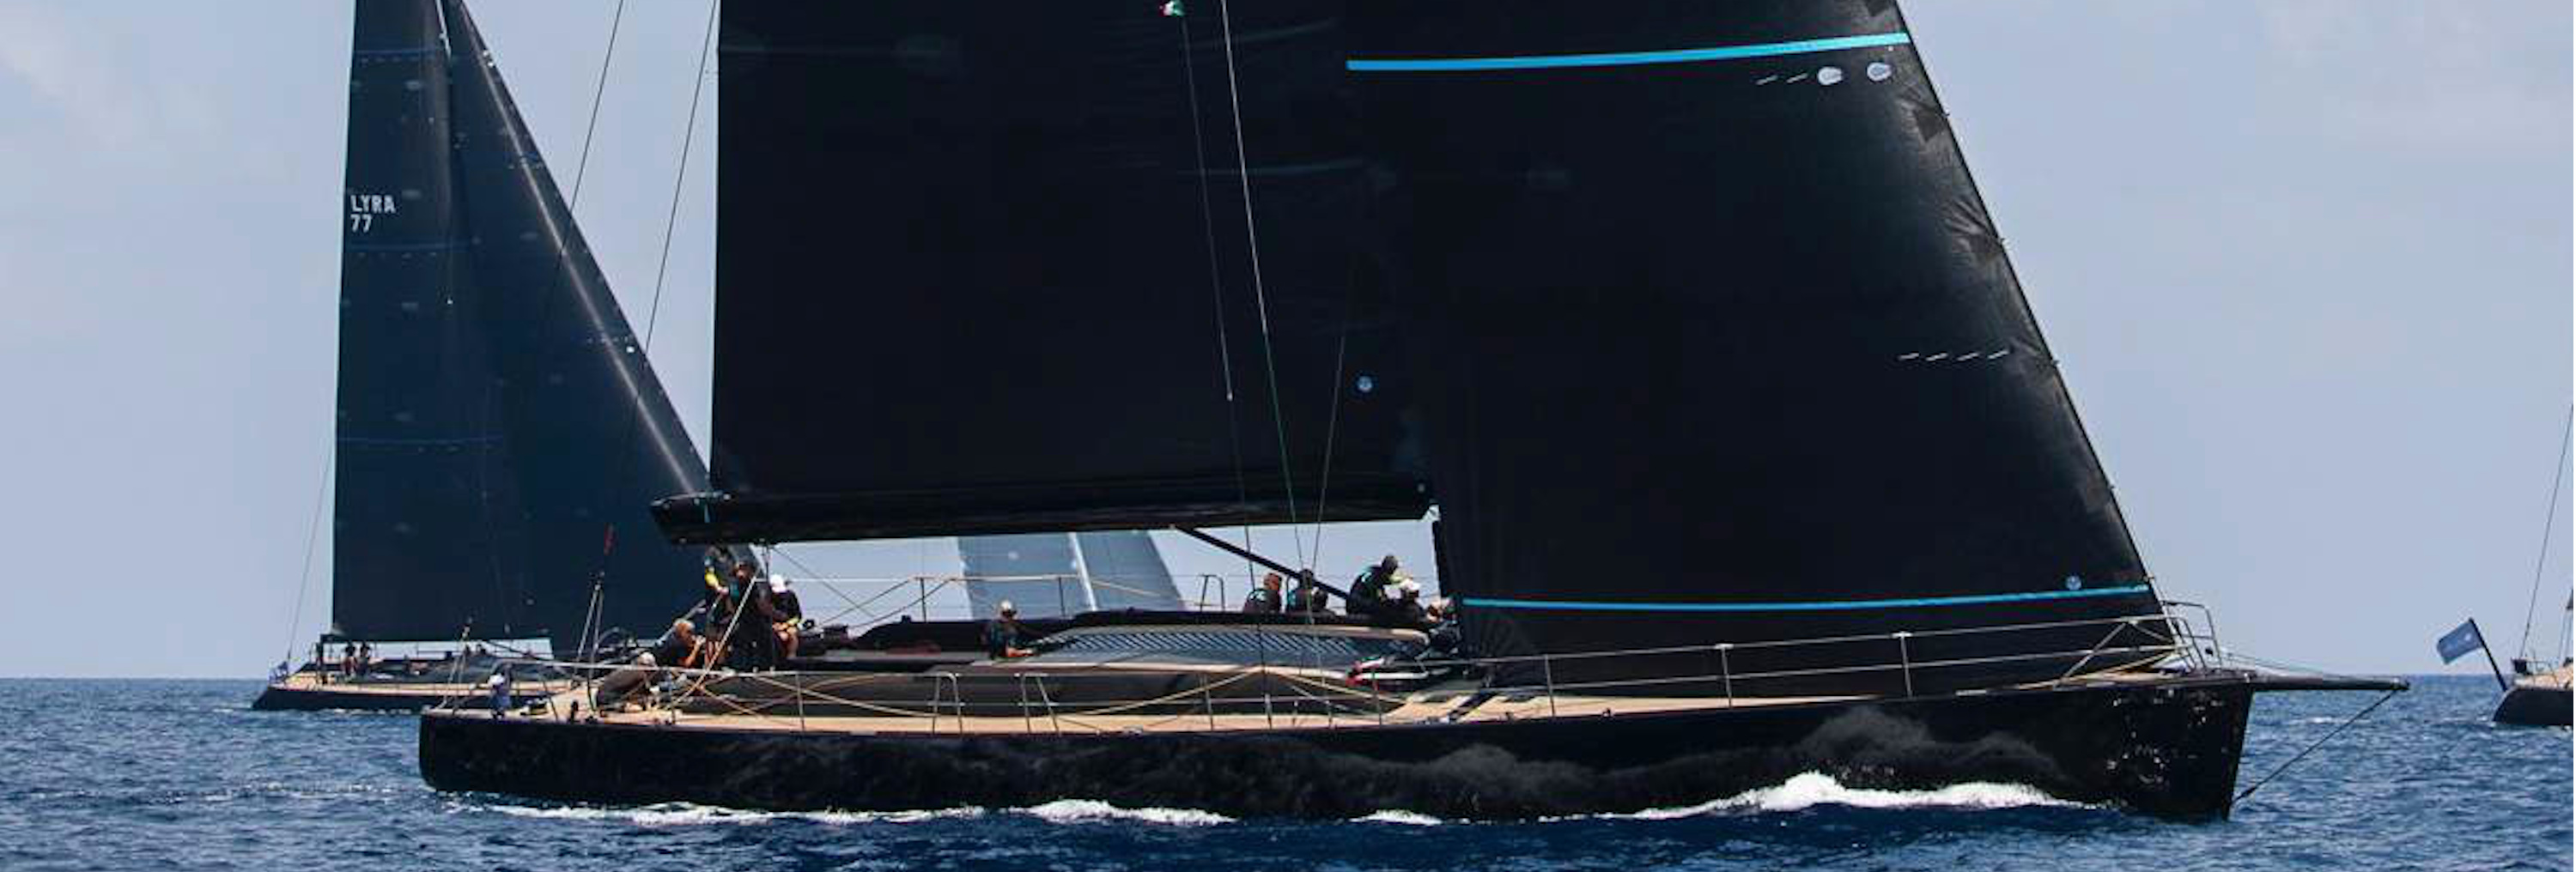 Wally 80' AESOP: New Central Agency Fleet Yacht for Charter